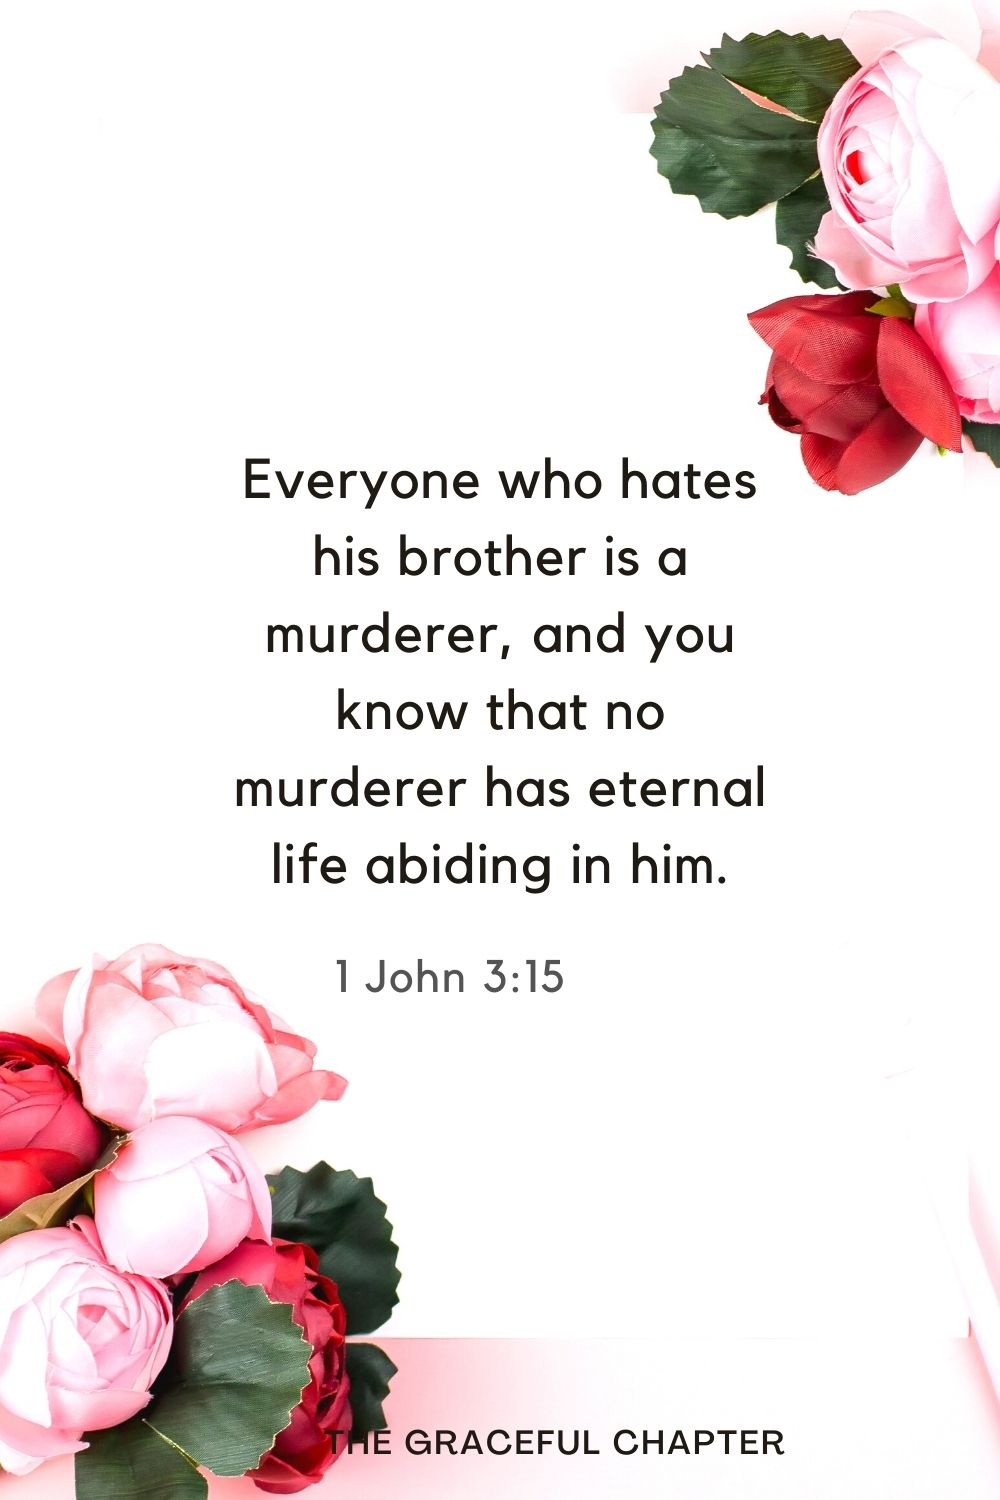 Everyone who hates his brother is a murderer, and you know that no murderer has eternal life abiding in him. 1 John 3:15